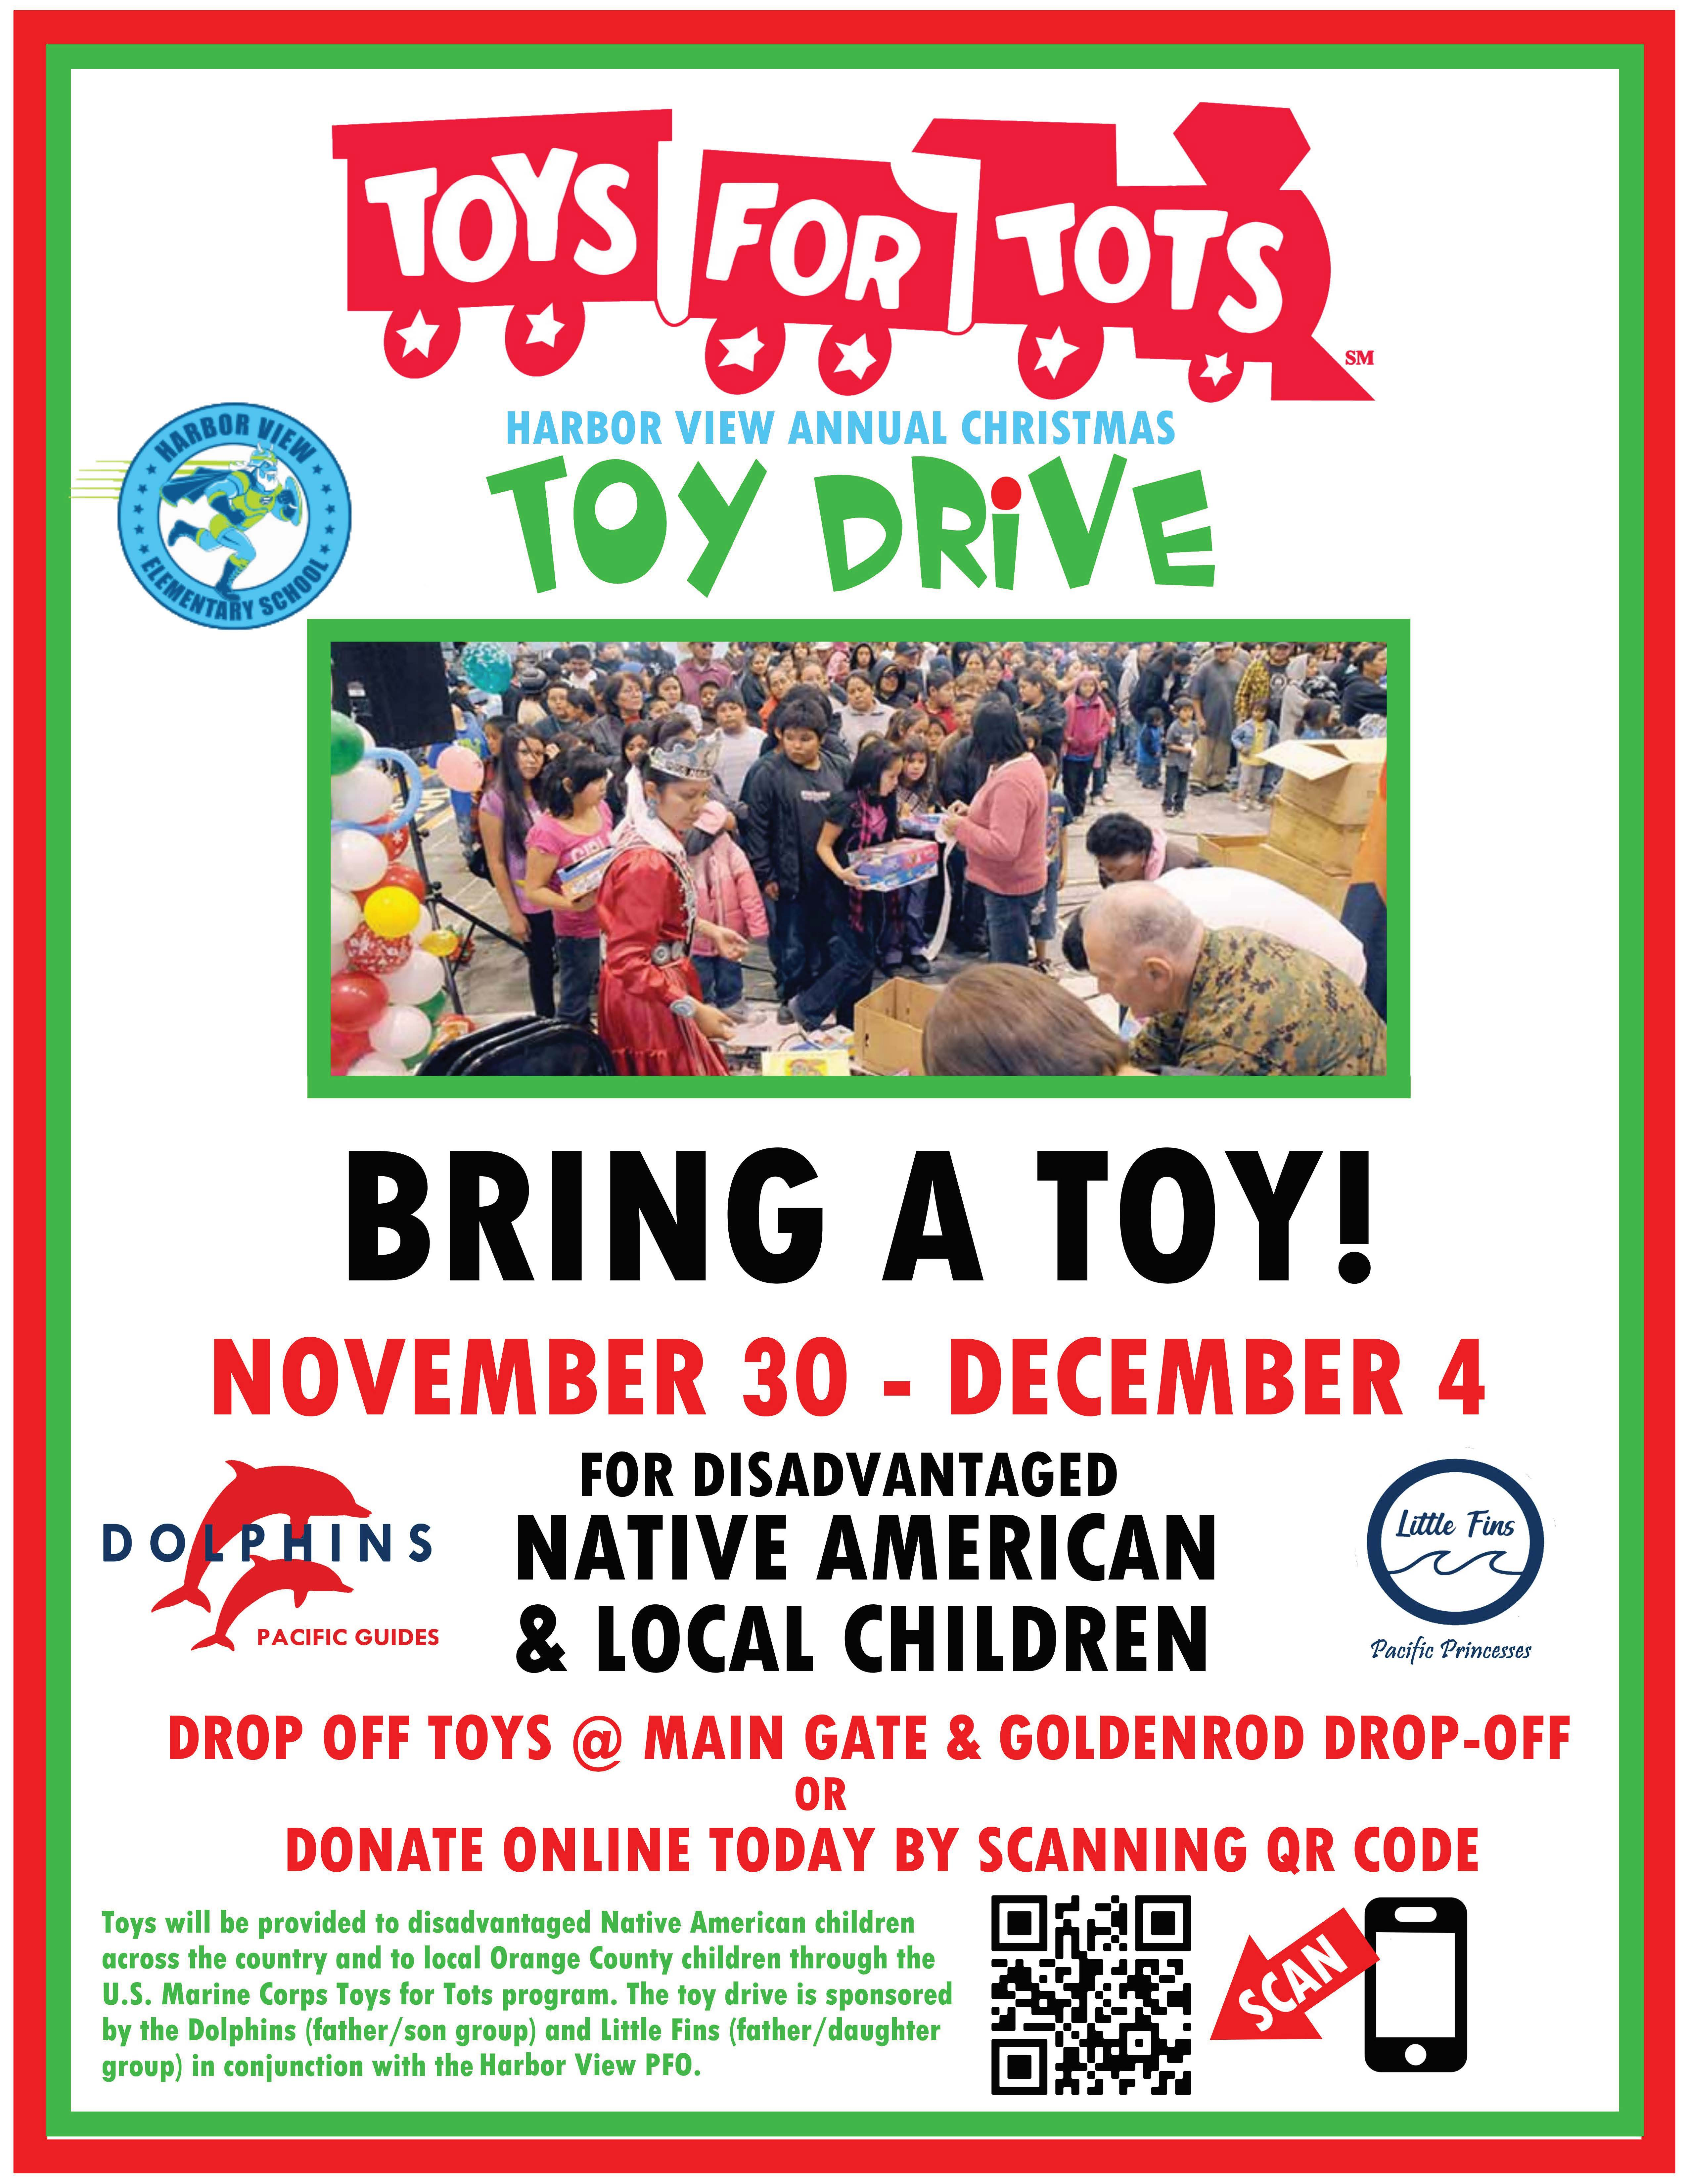 Toys for Tots Harbor View (Dolphins & Little Fins) Flyer